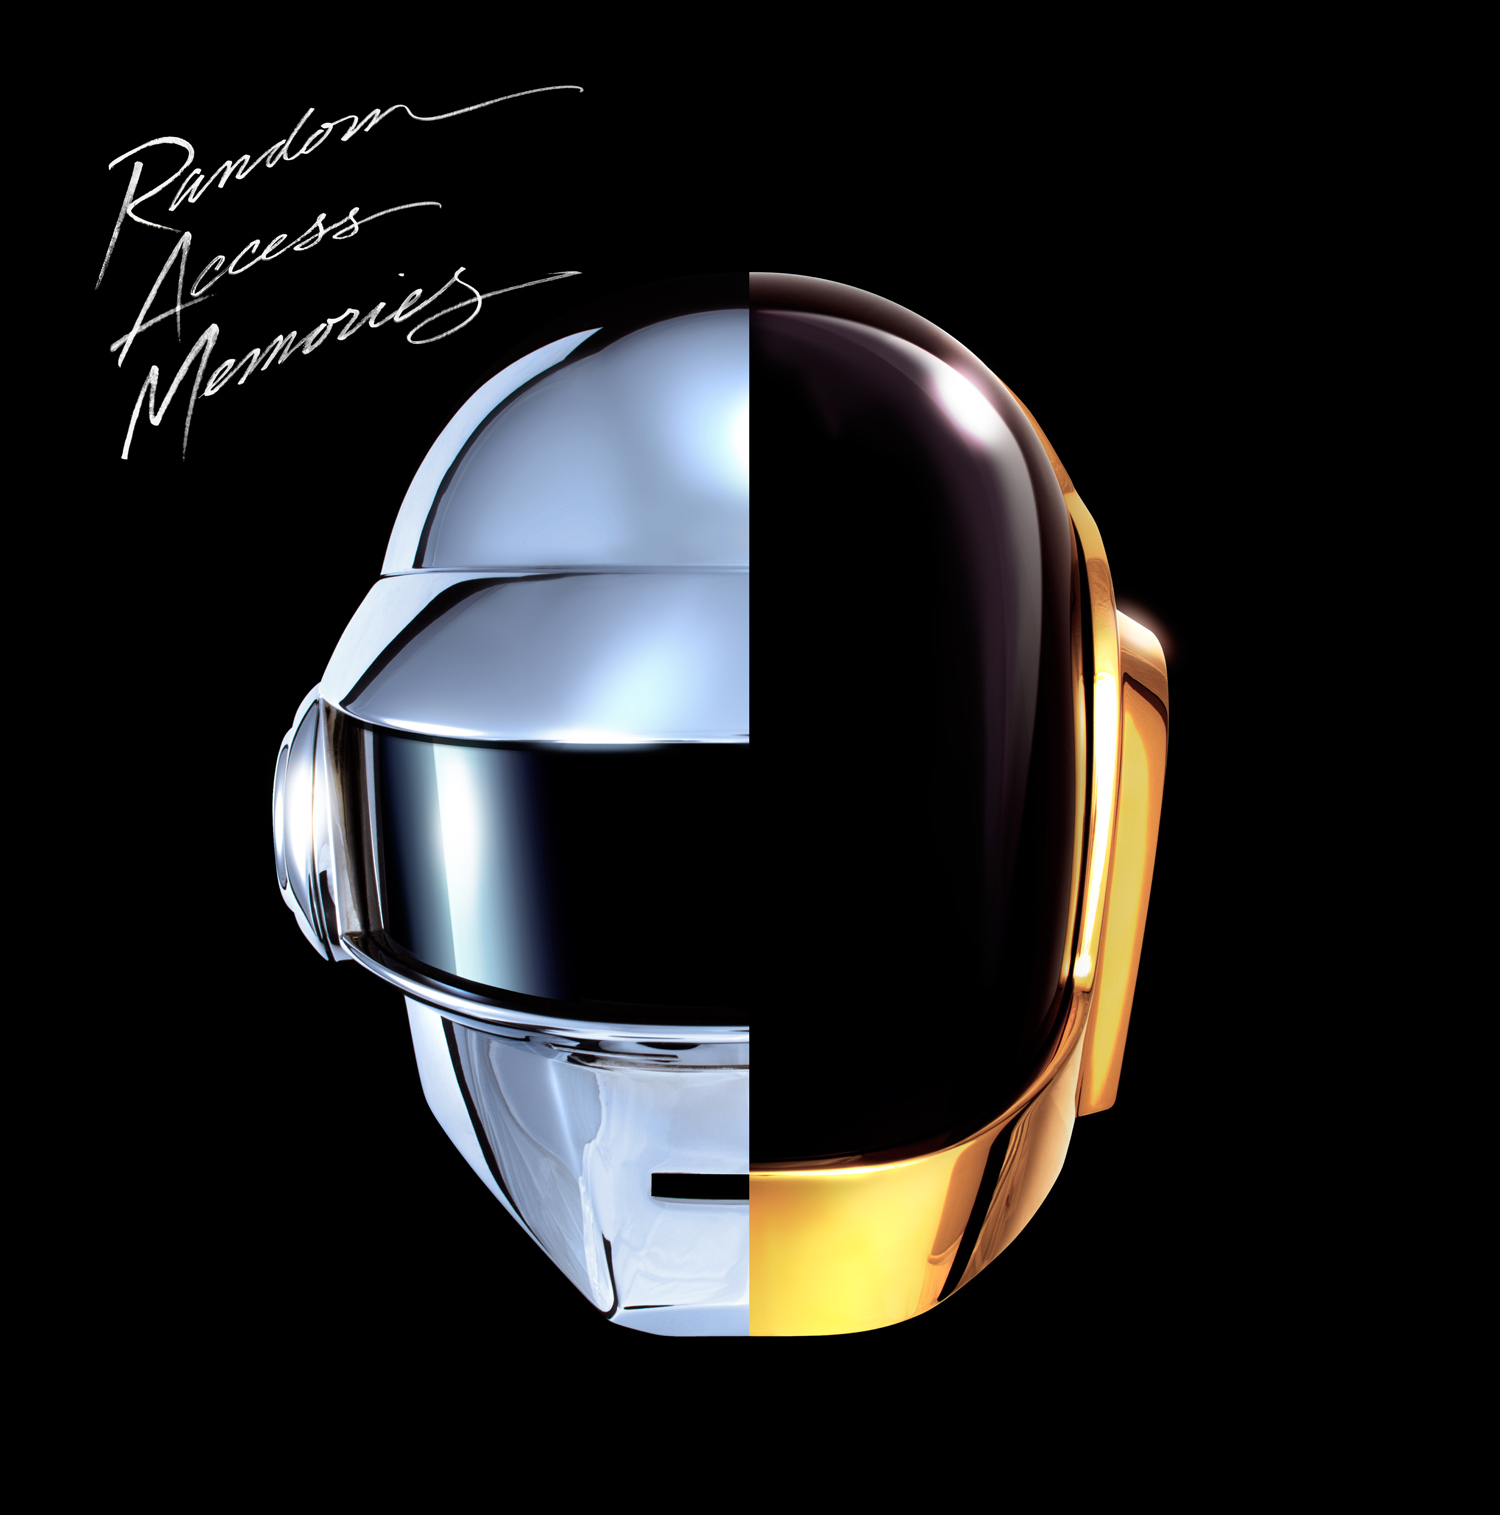 daft-punk-random-access-memories-staged